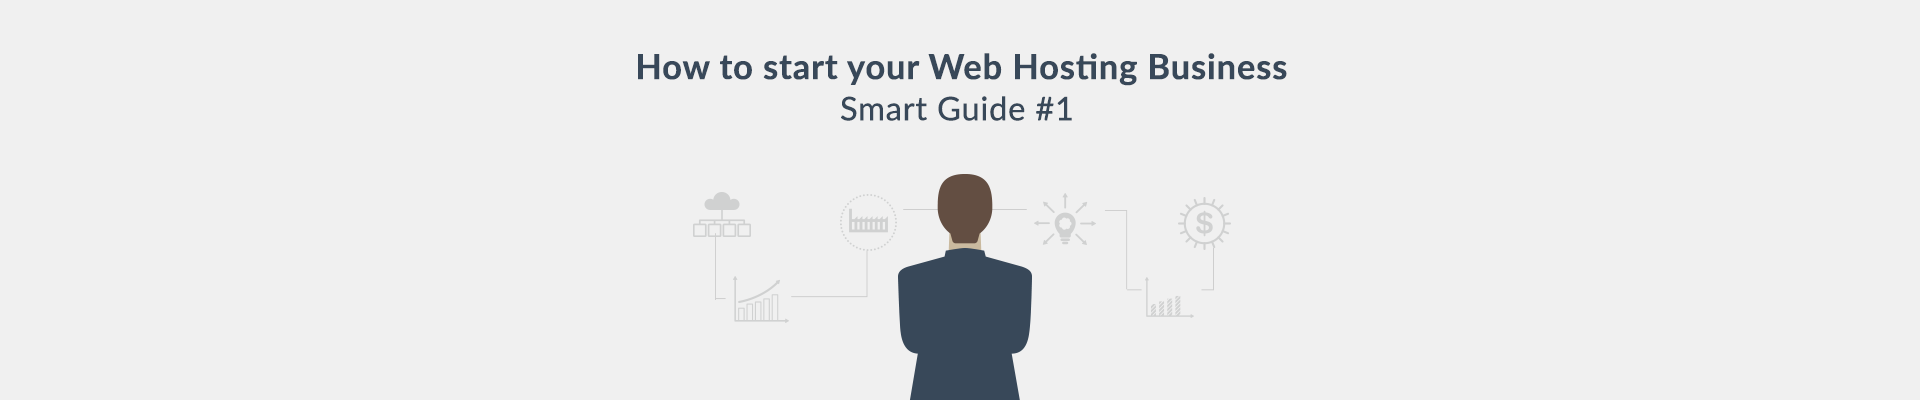 web hosting for businesses